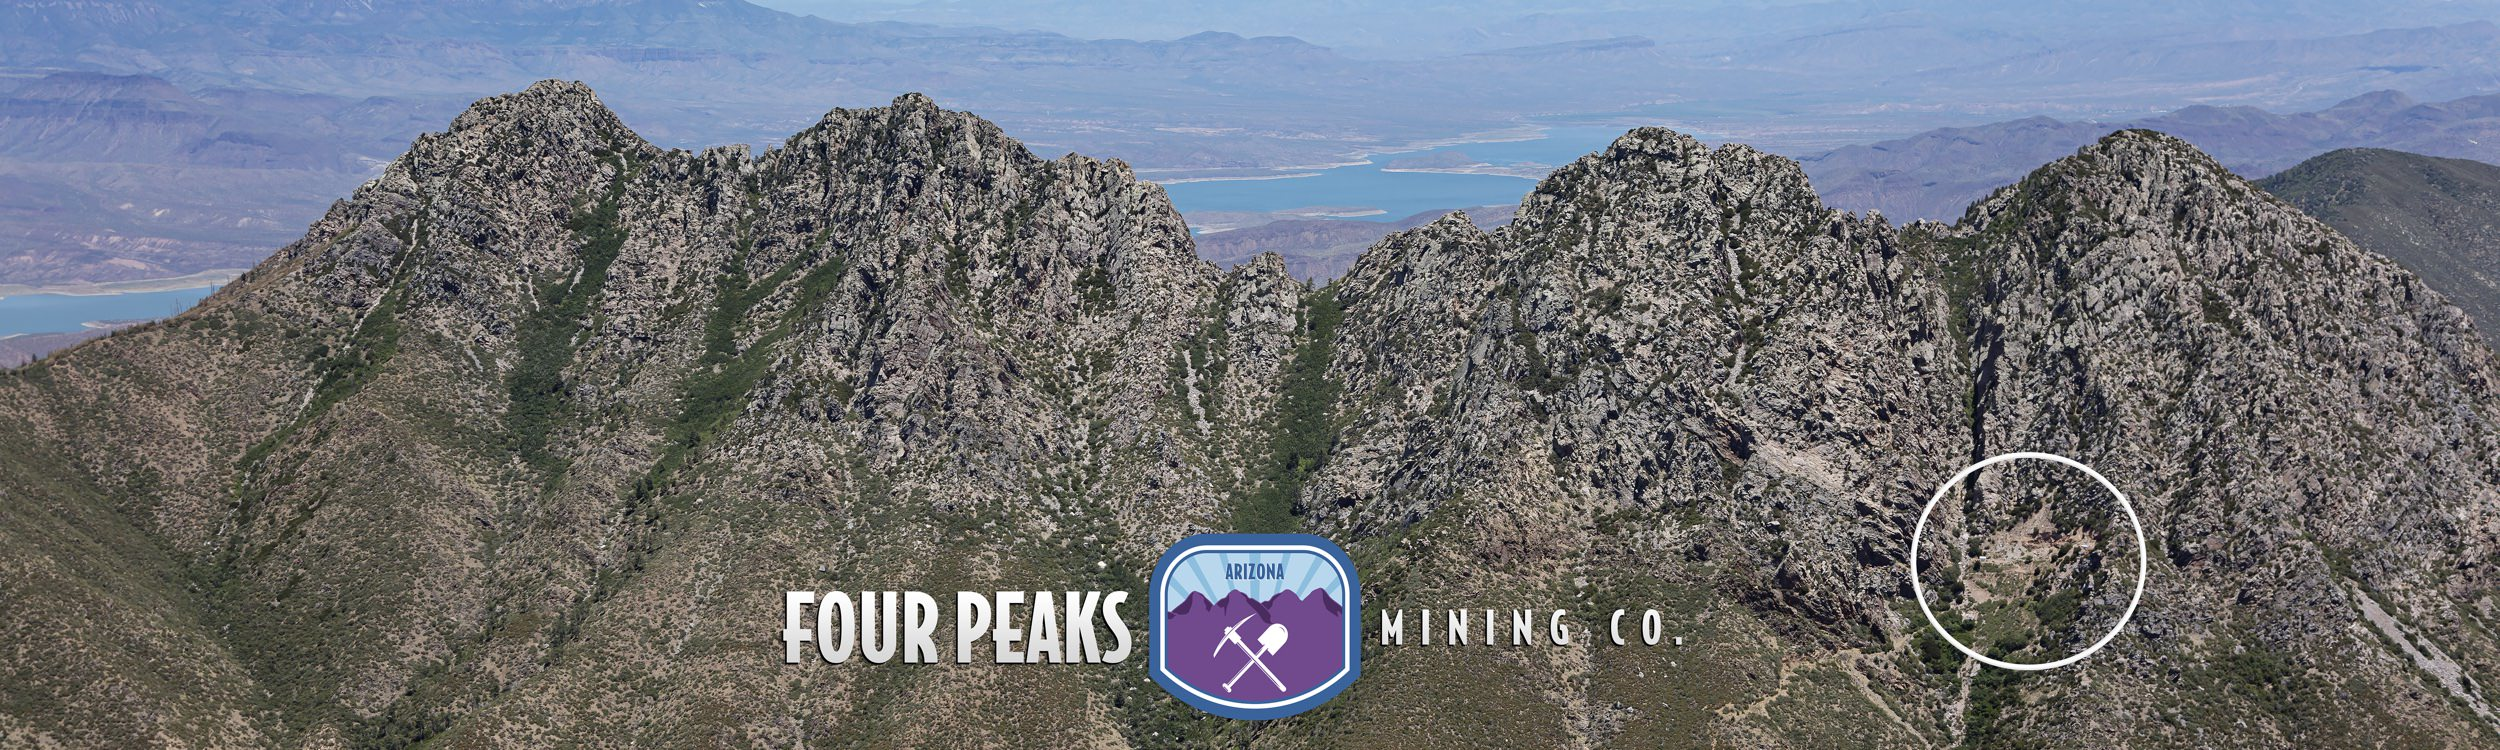 four-peaks-mining-co-hero-1